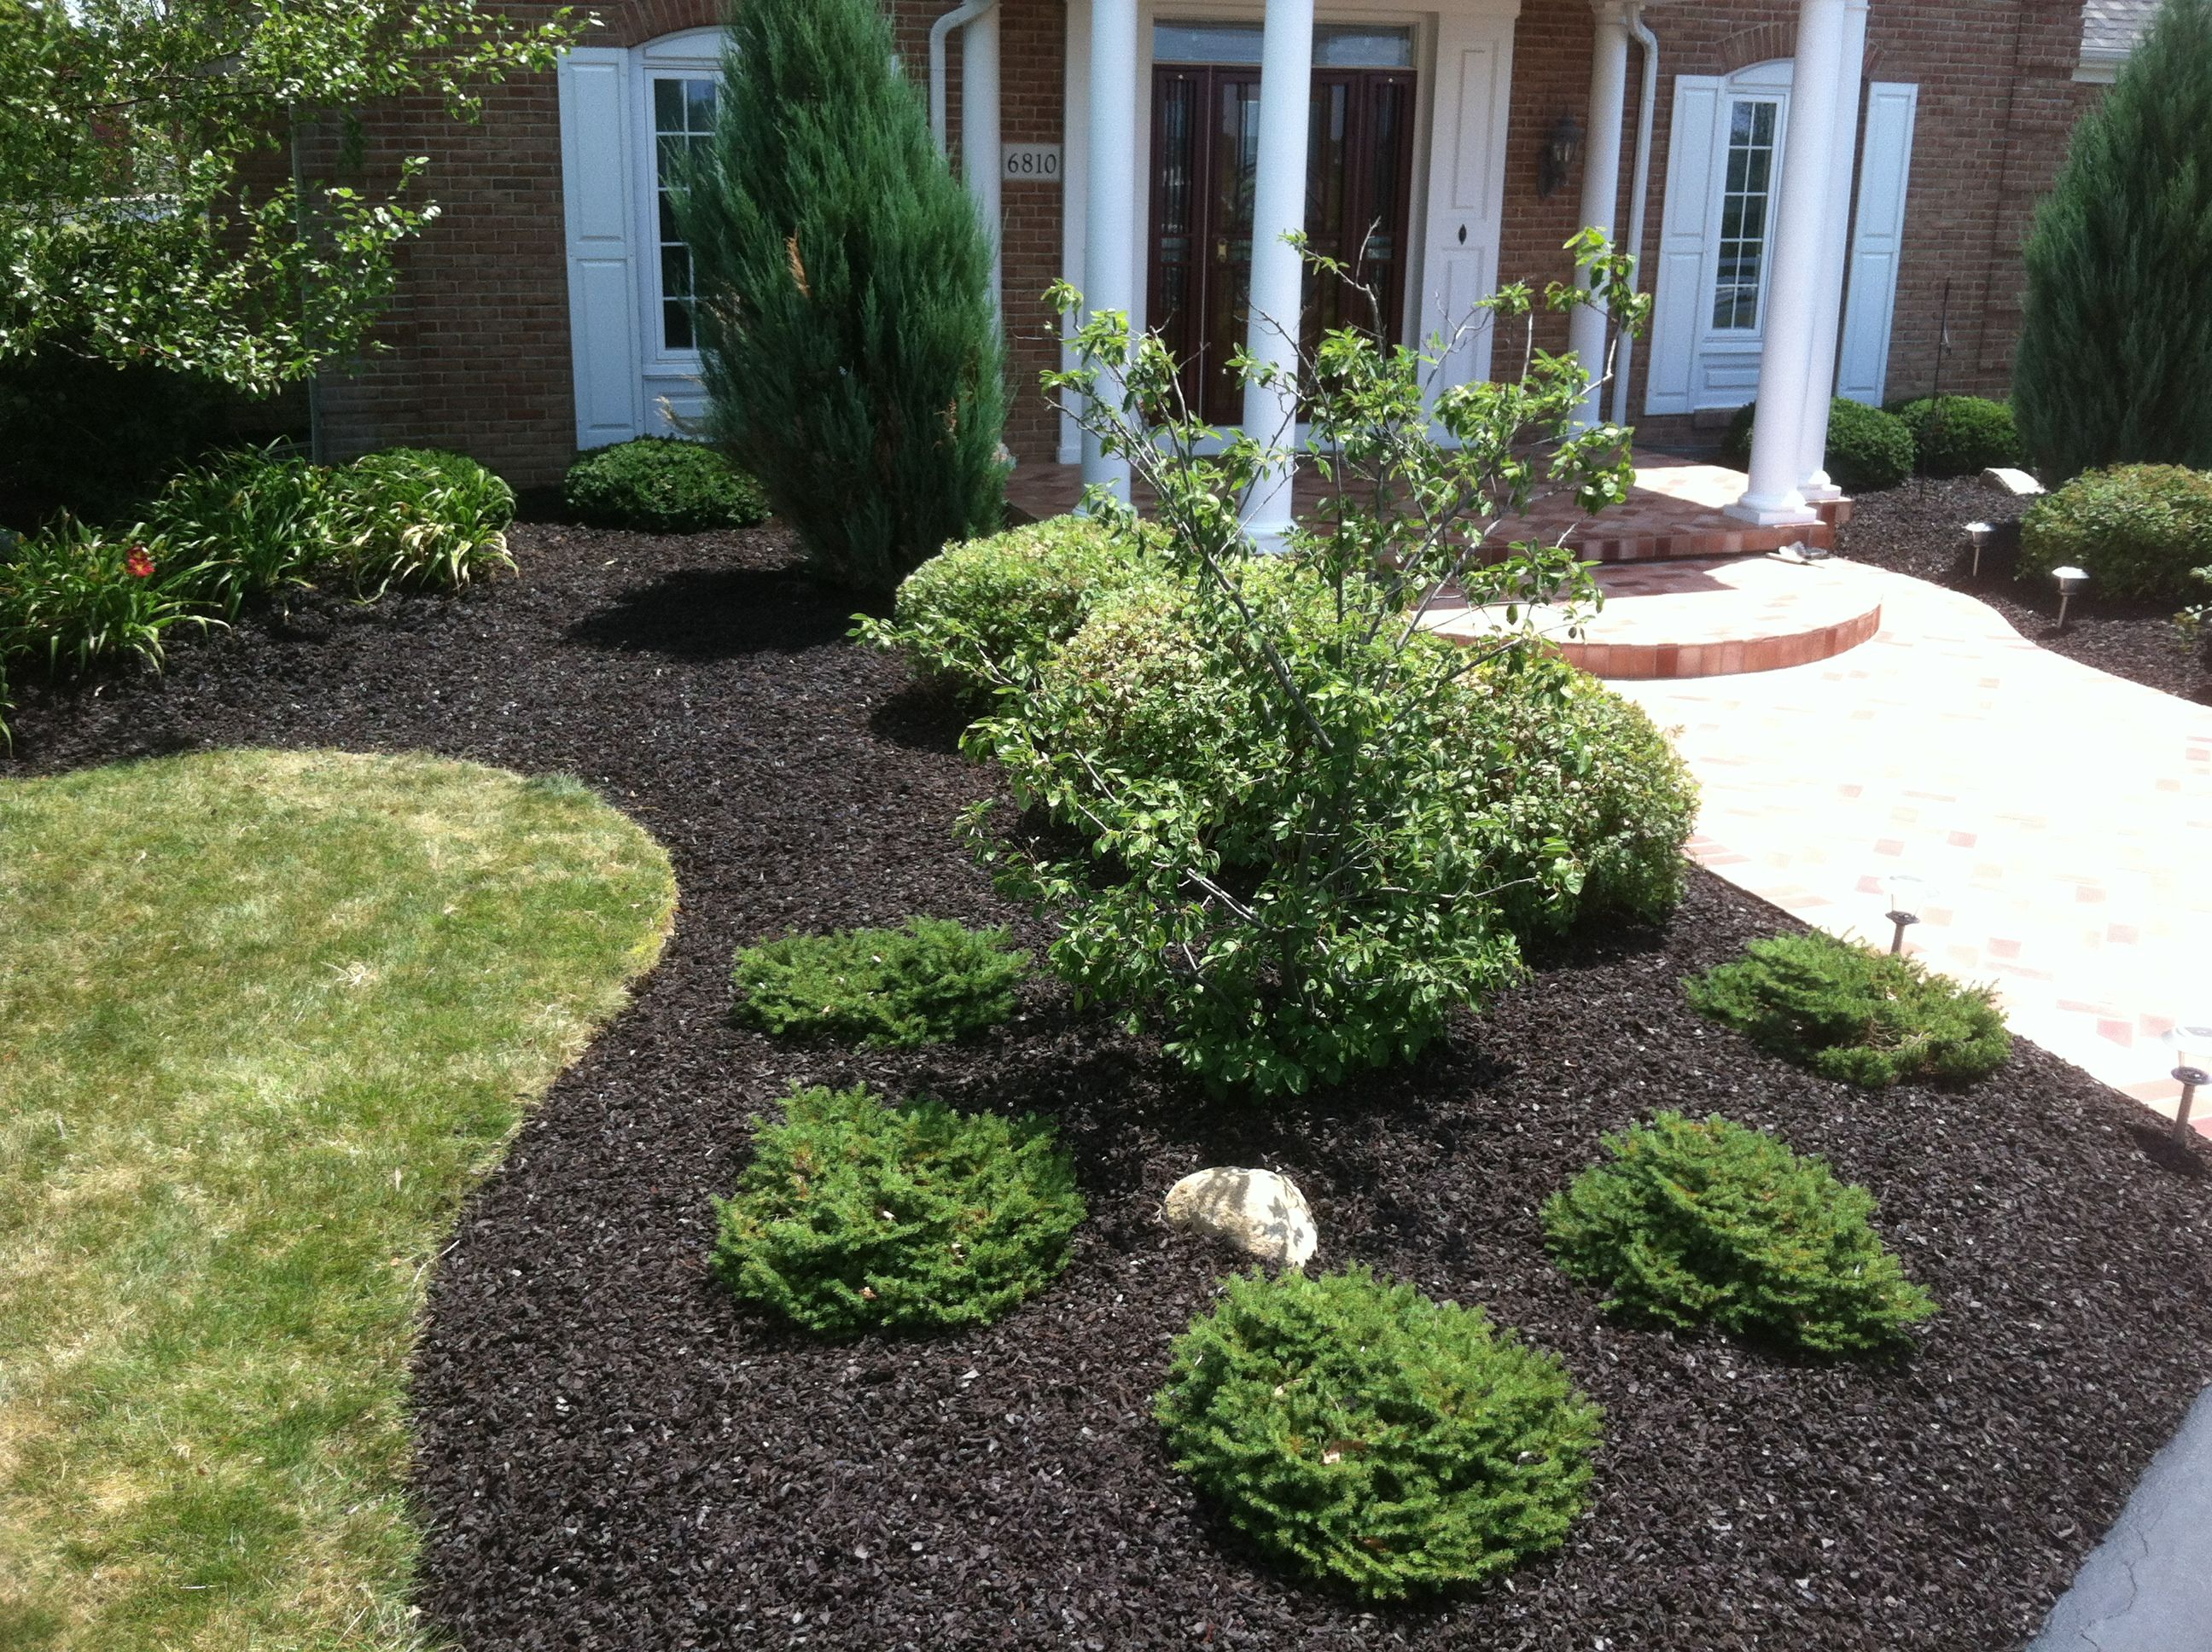 Luxury Commercial Landscaping Companies Near Me